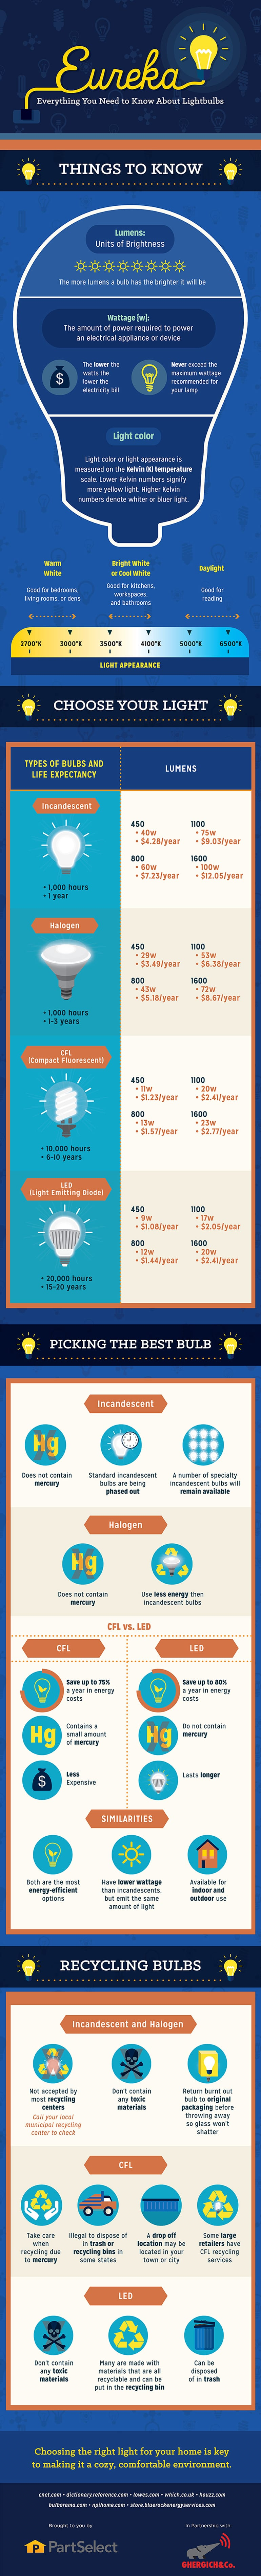 everything-you-need-to-know-lightbulbs